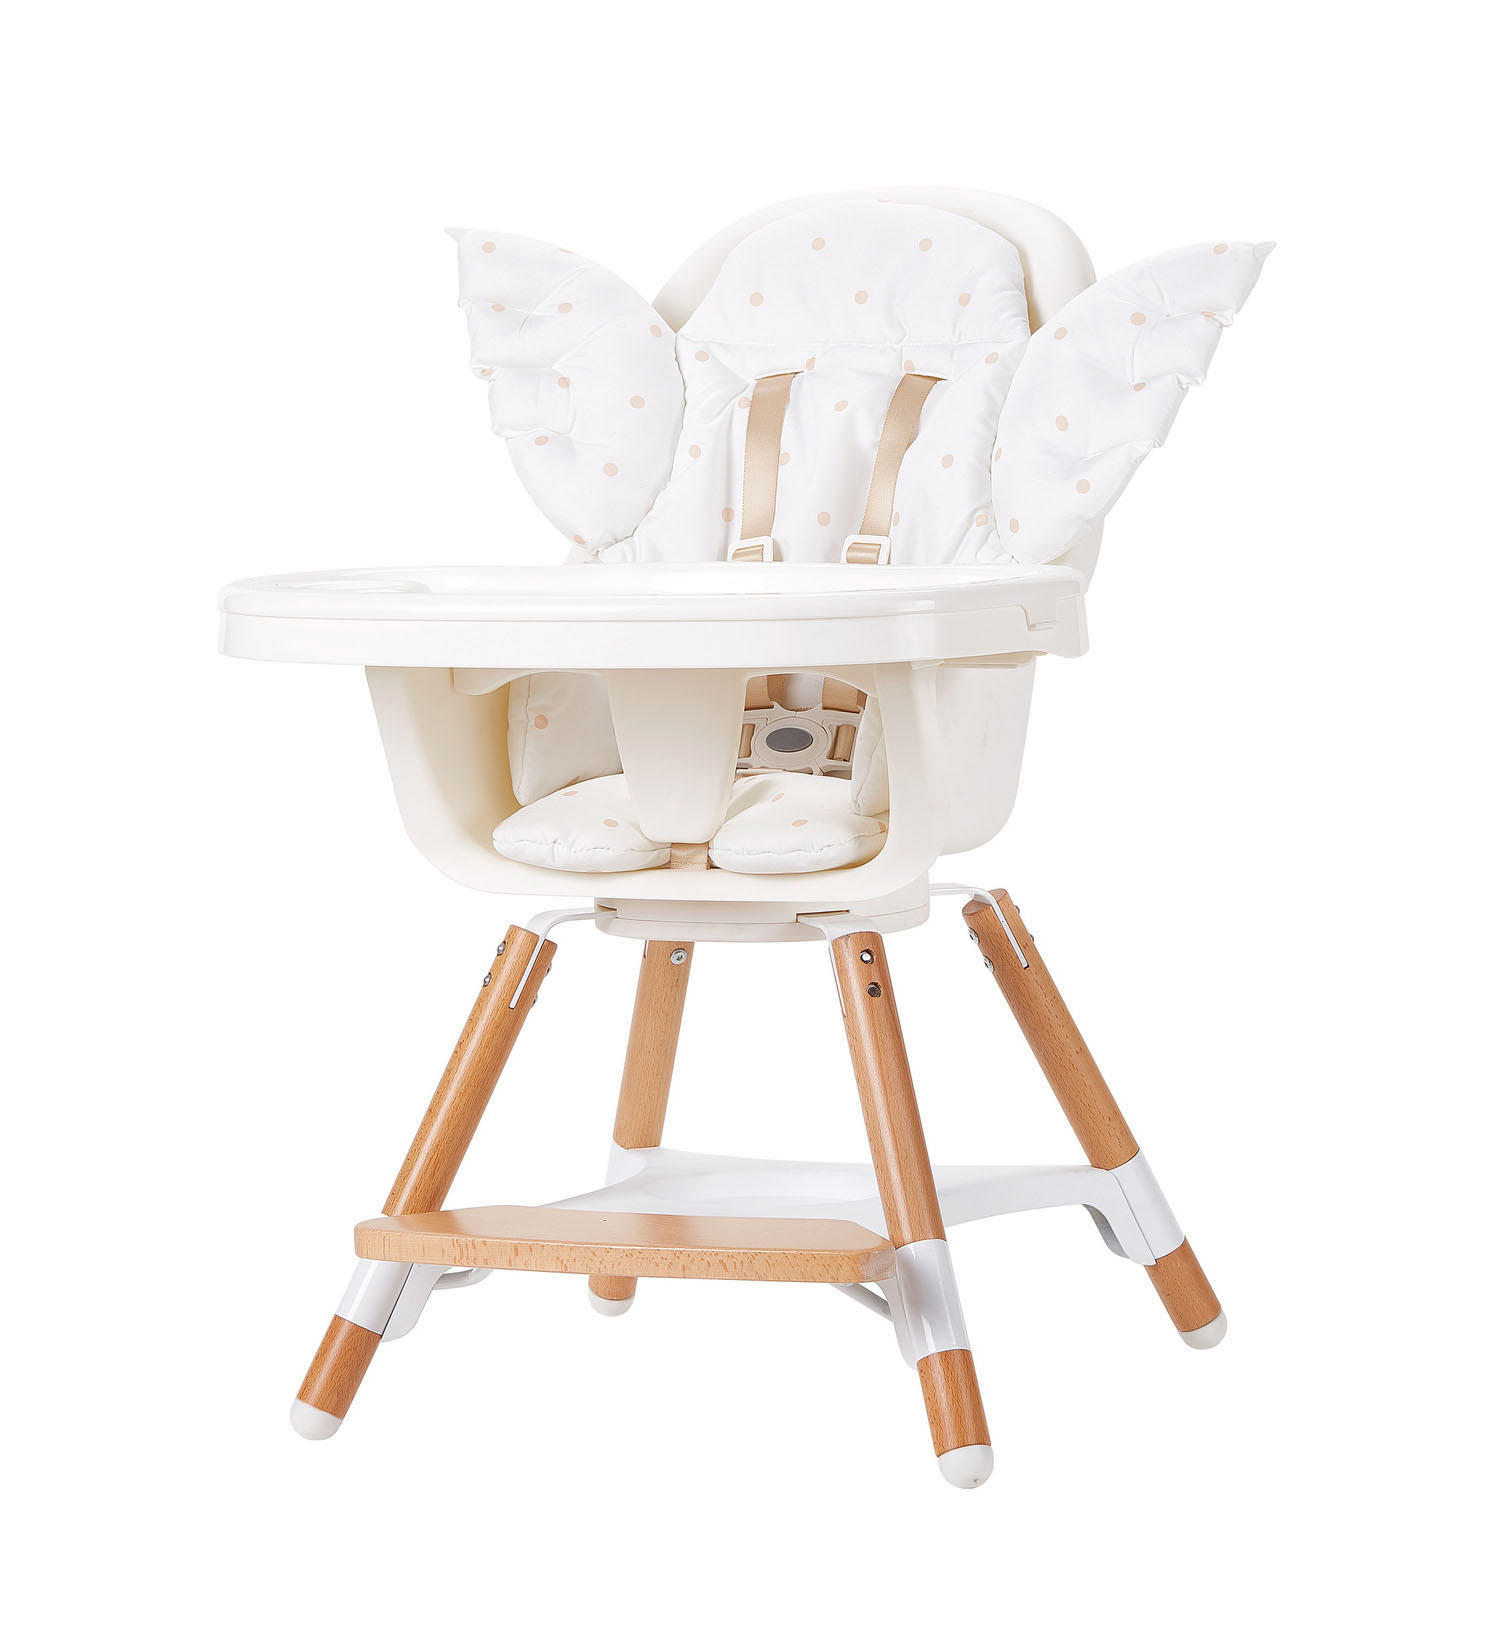 Latest chair top high chair infant manufacturers for feeding-1